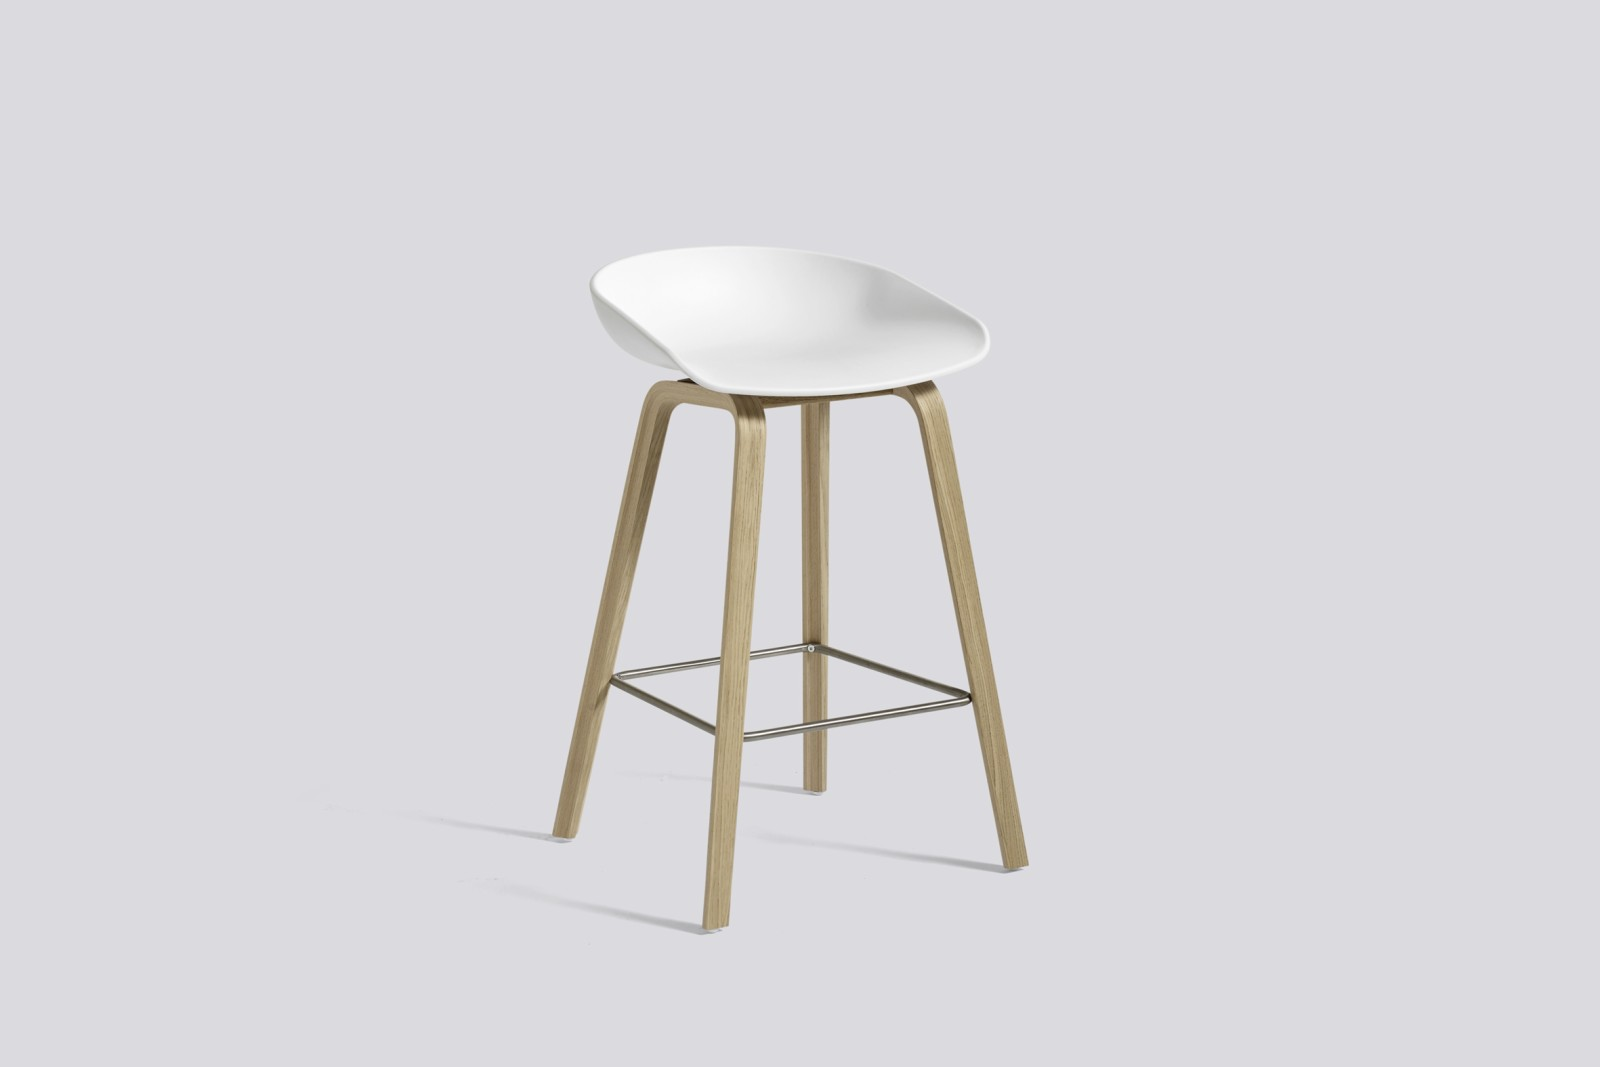 About A Stool AAS32 Matt Lacquered Oak Base, White Seat, Low